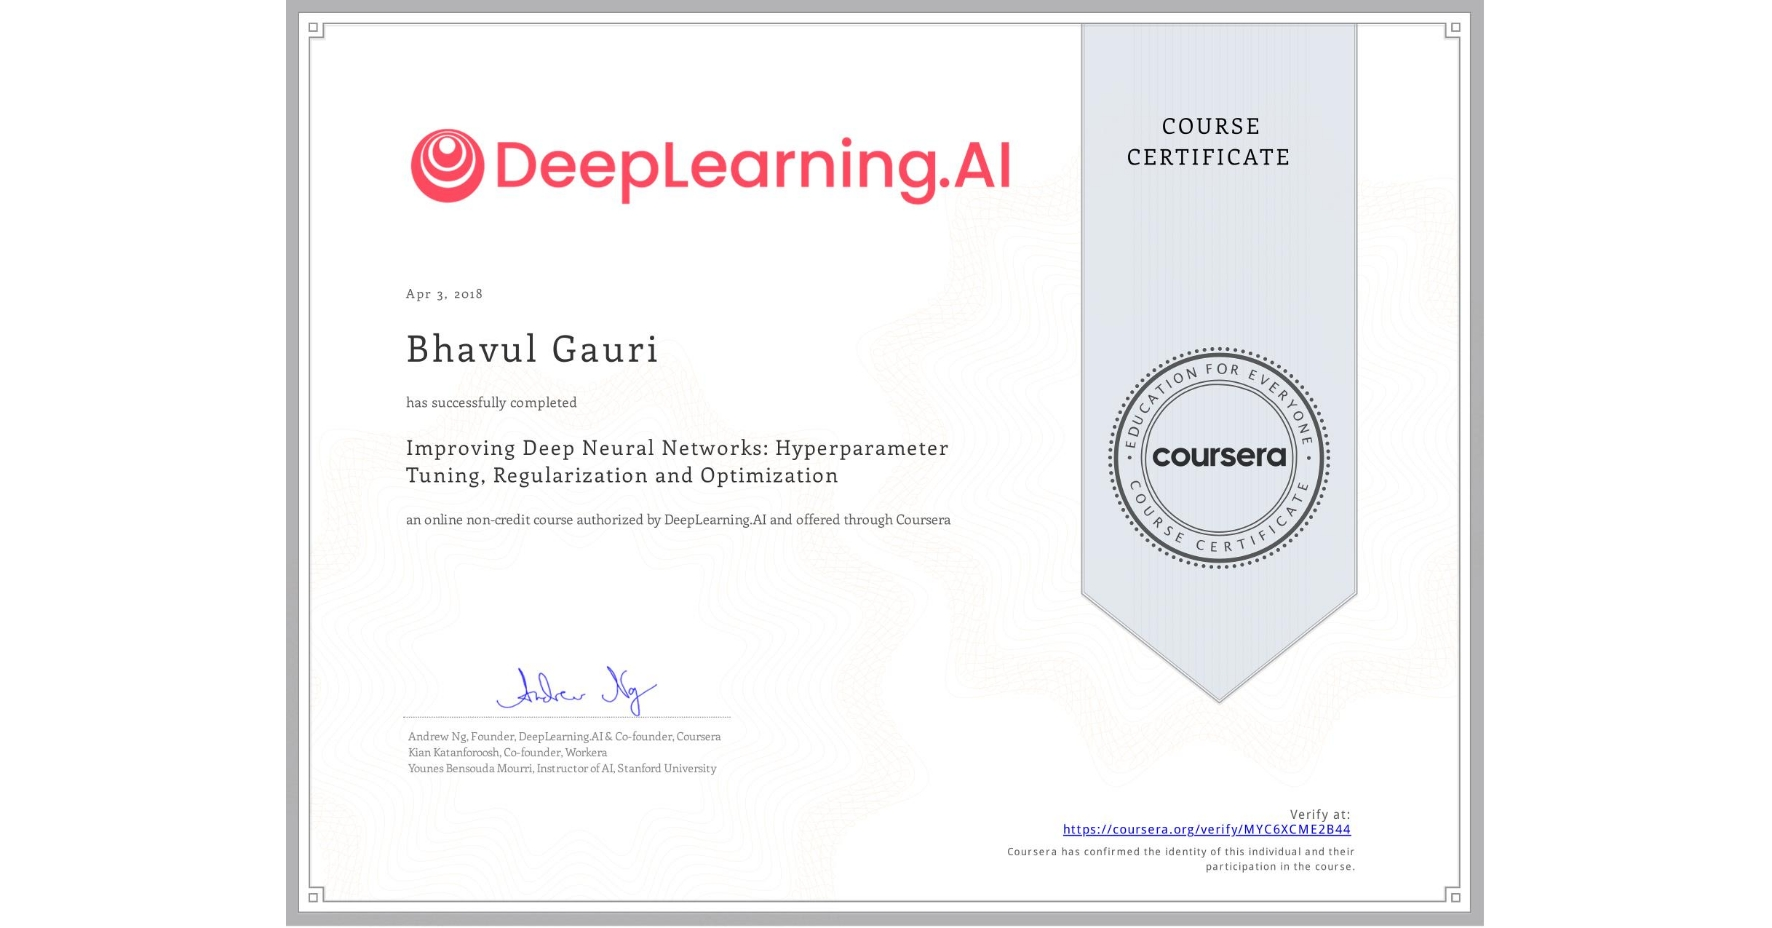 View certificate for Bhavul Gauri, Improving Deep Neural Networks: Hyperparameter Tuning, Regularization and Optimization, an online non-credit course authorized by DeepLearning.AI and offered through Coursera